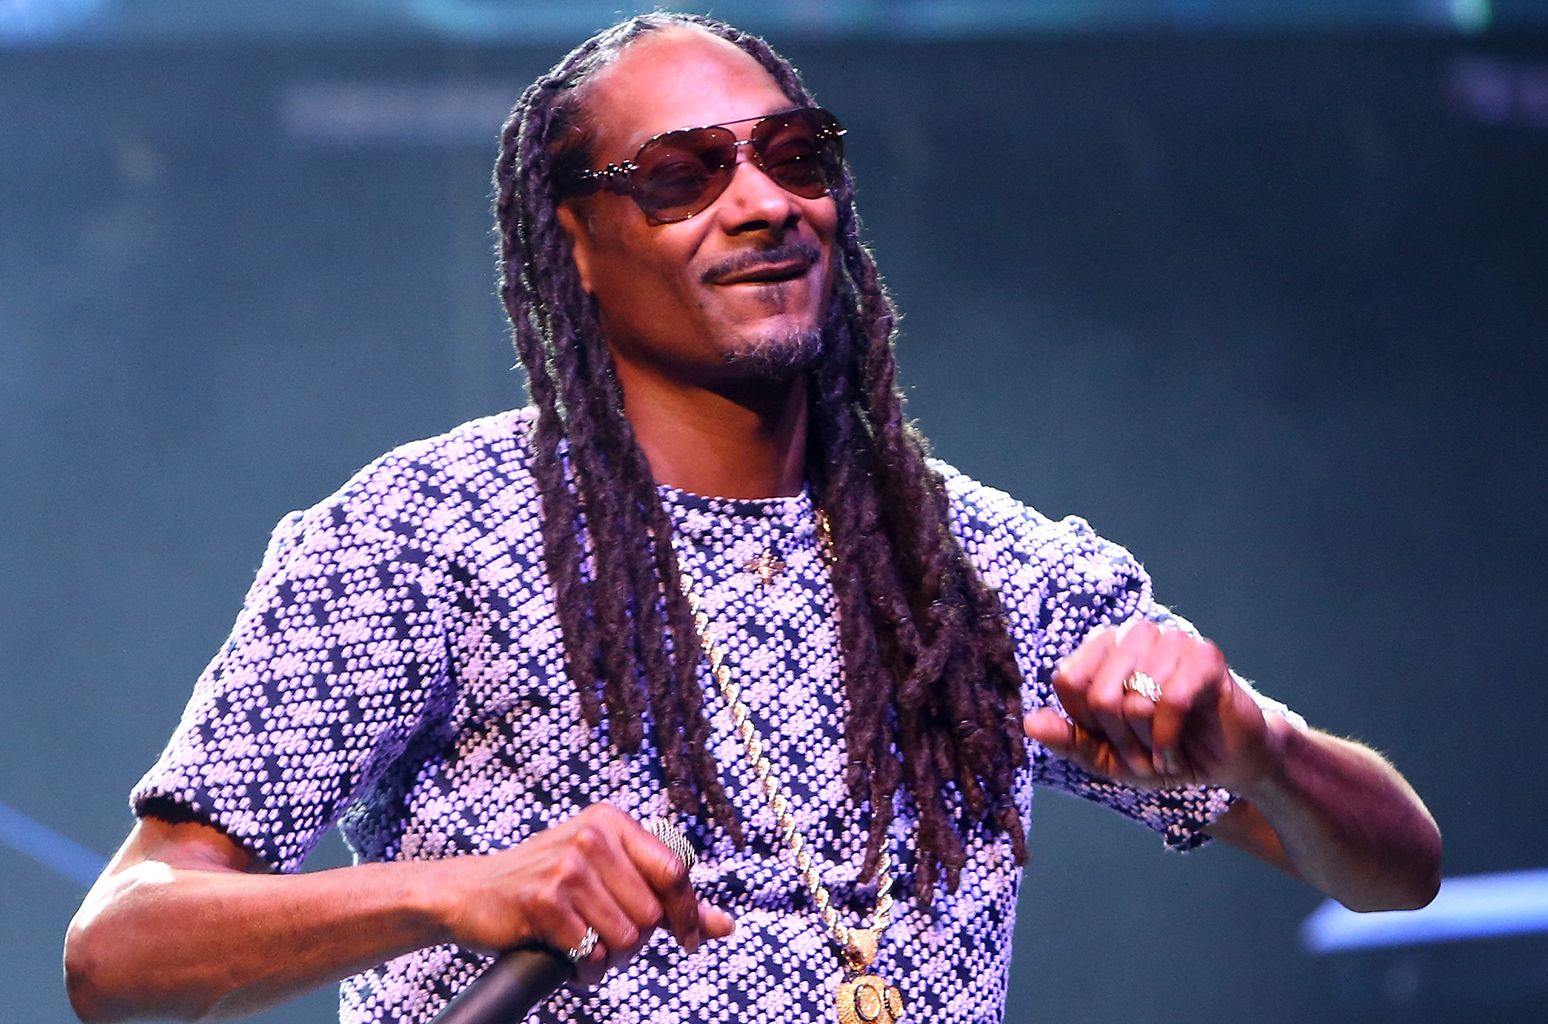 Snoop Dogg Admits to Being 'Brainwashed' to Believe he Couldn't Vote With a Criminal Record